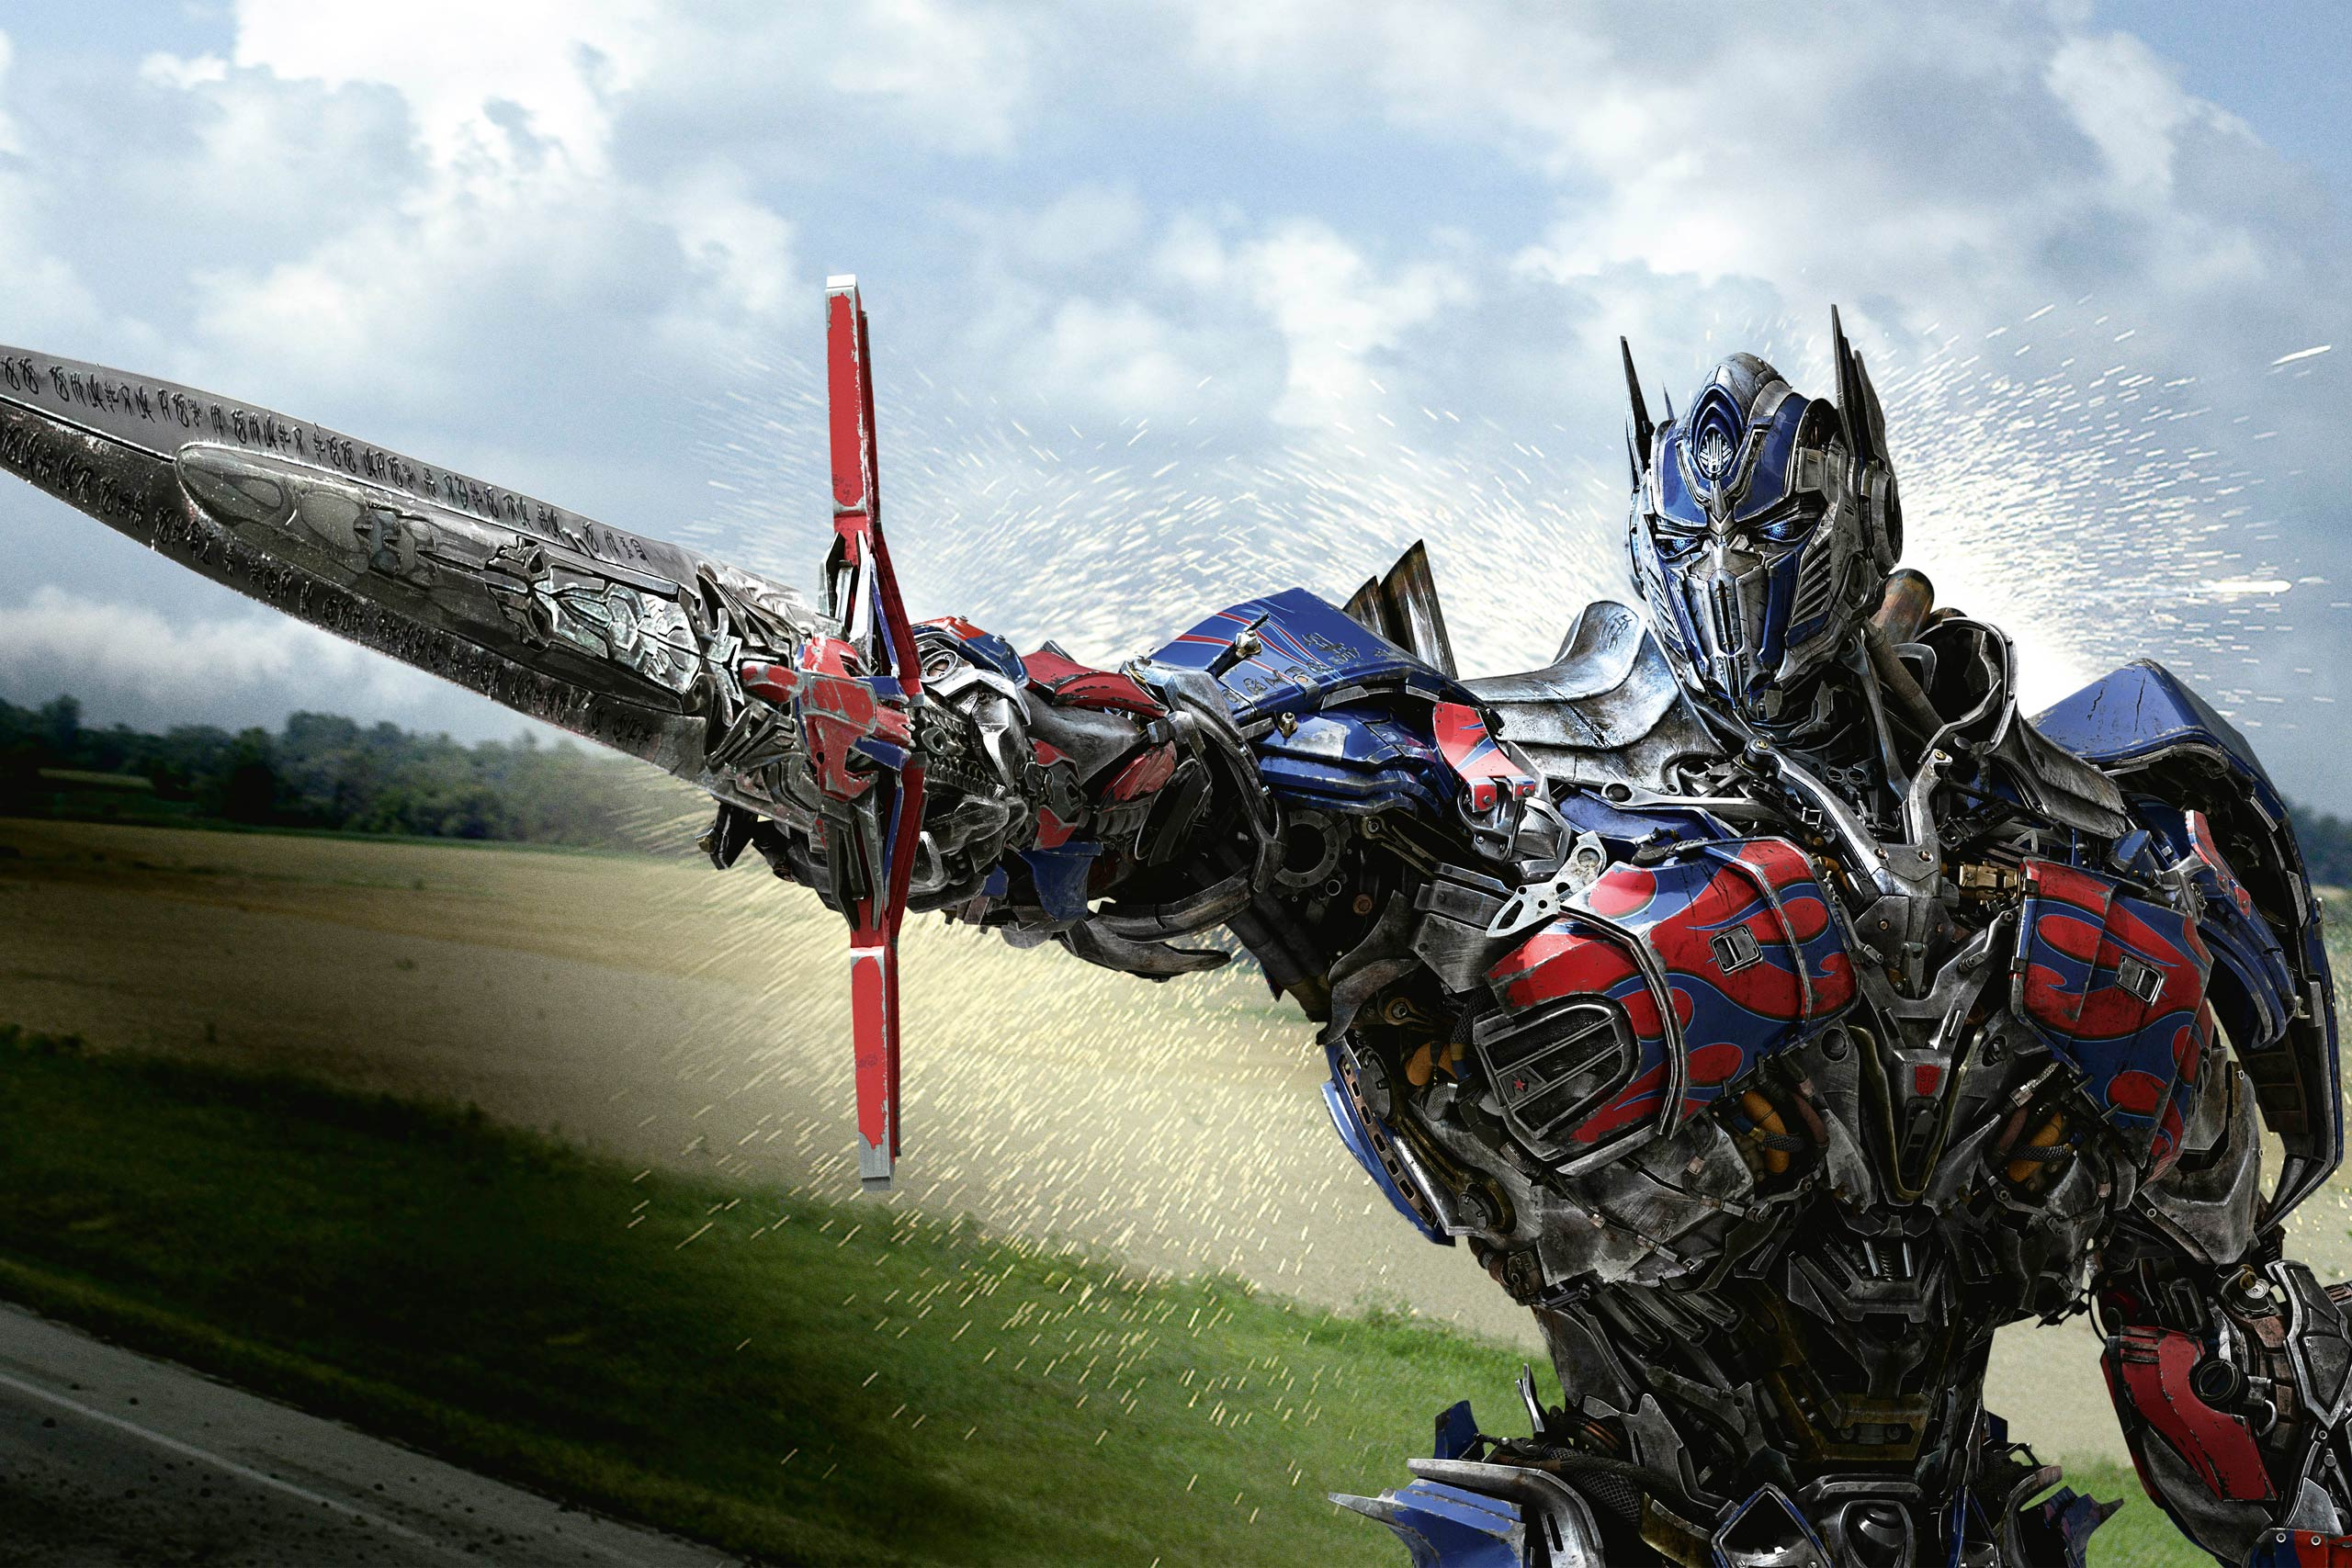 5. Transformers: Age of Extinction - $245,439,076